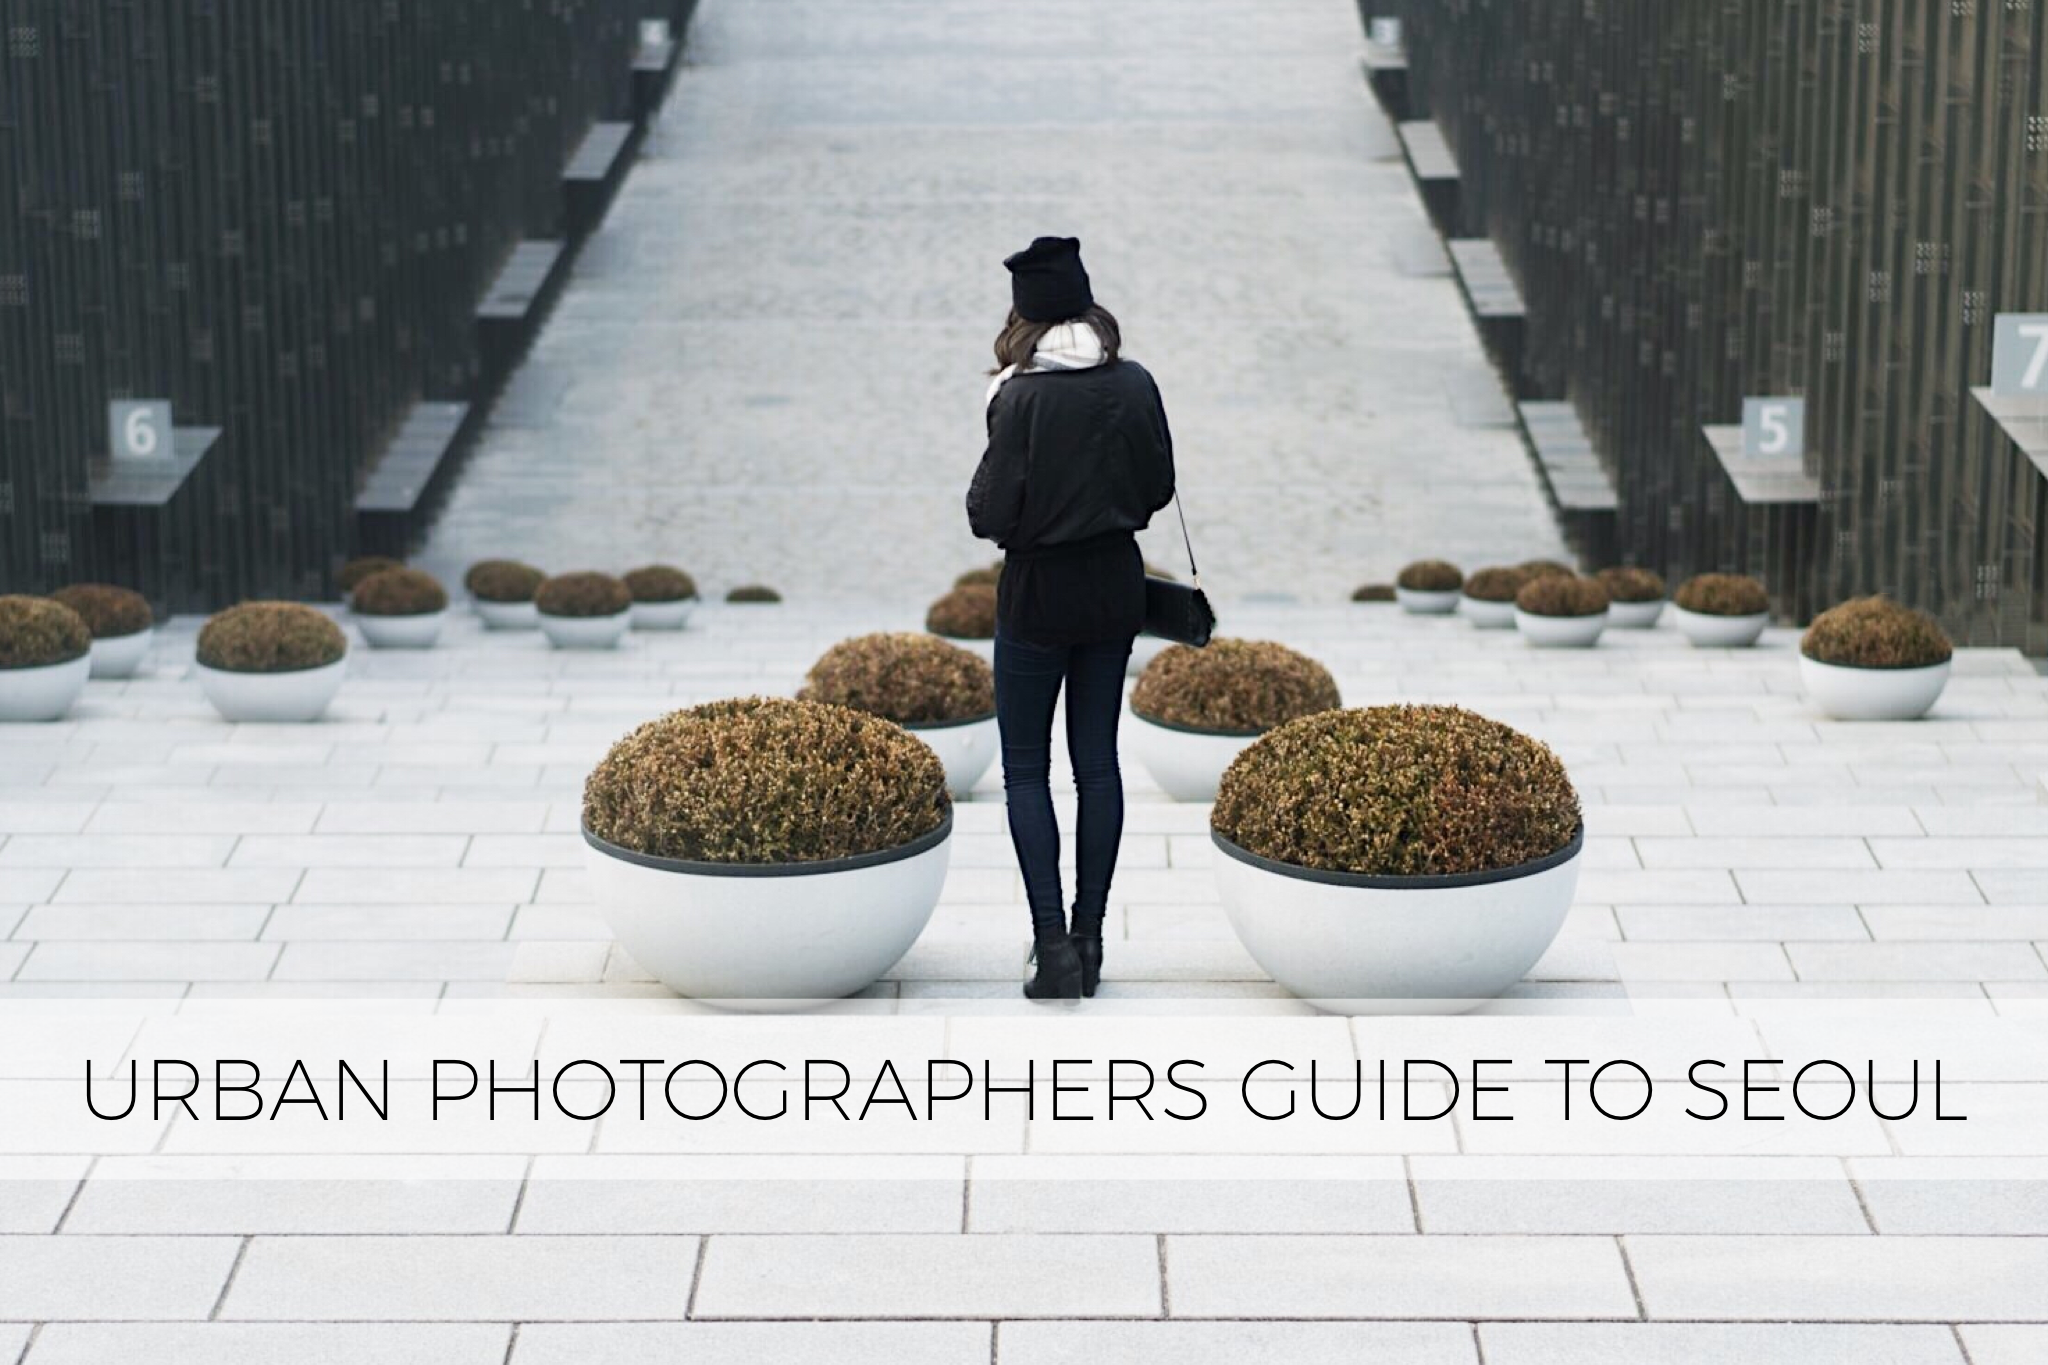 Urban Photographers Guide to Seoul